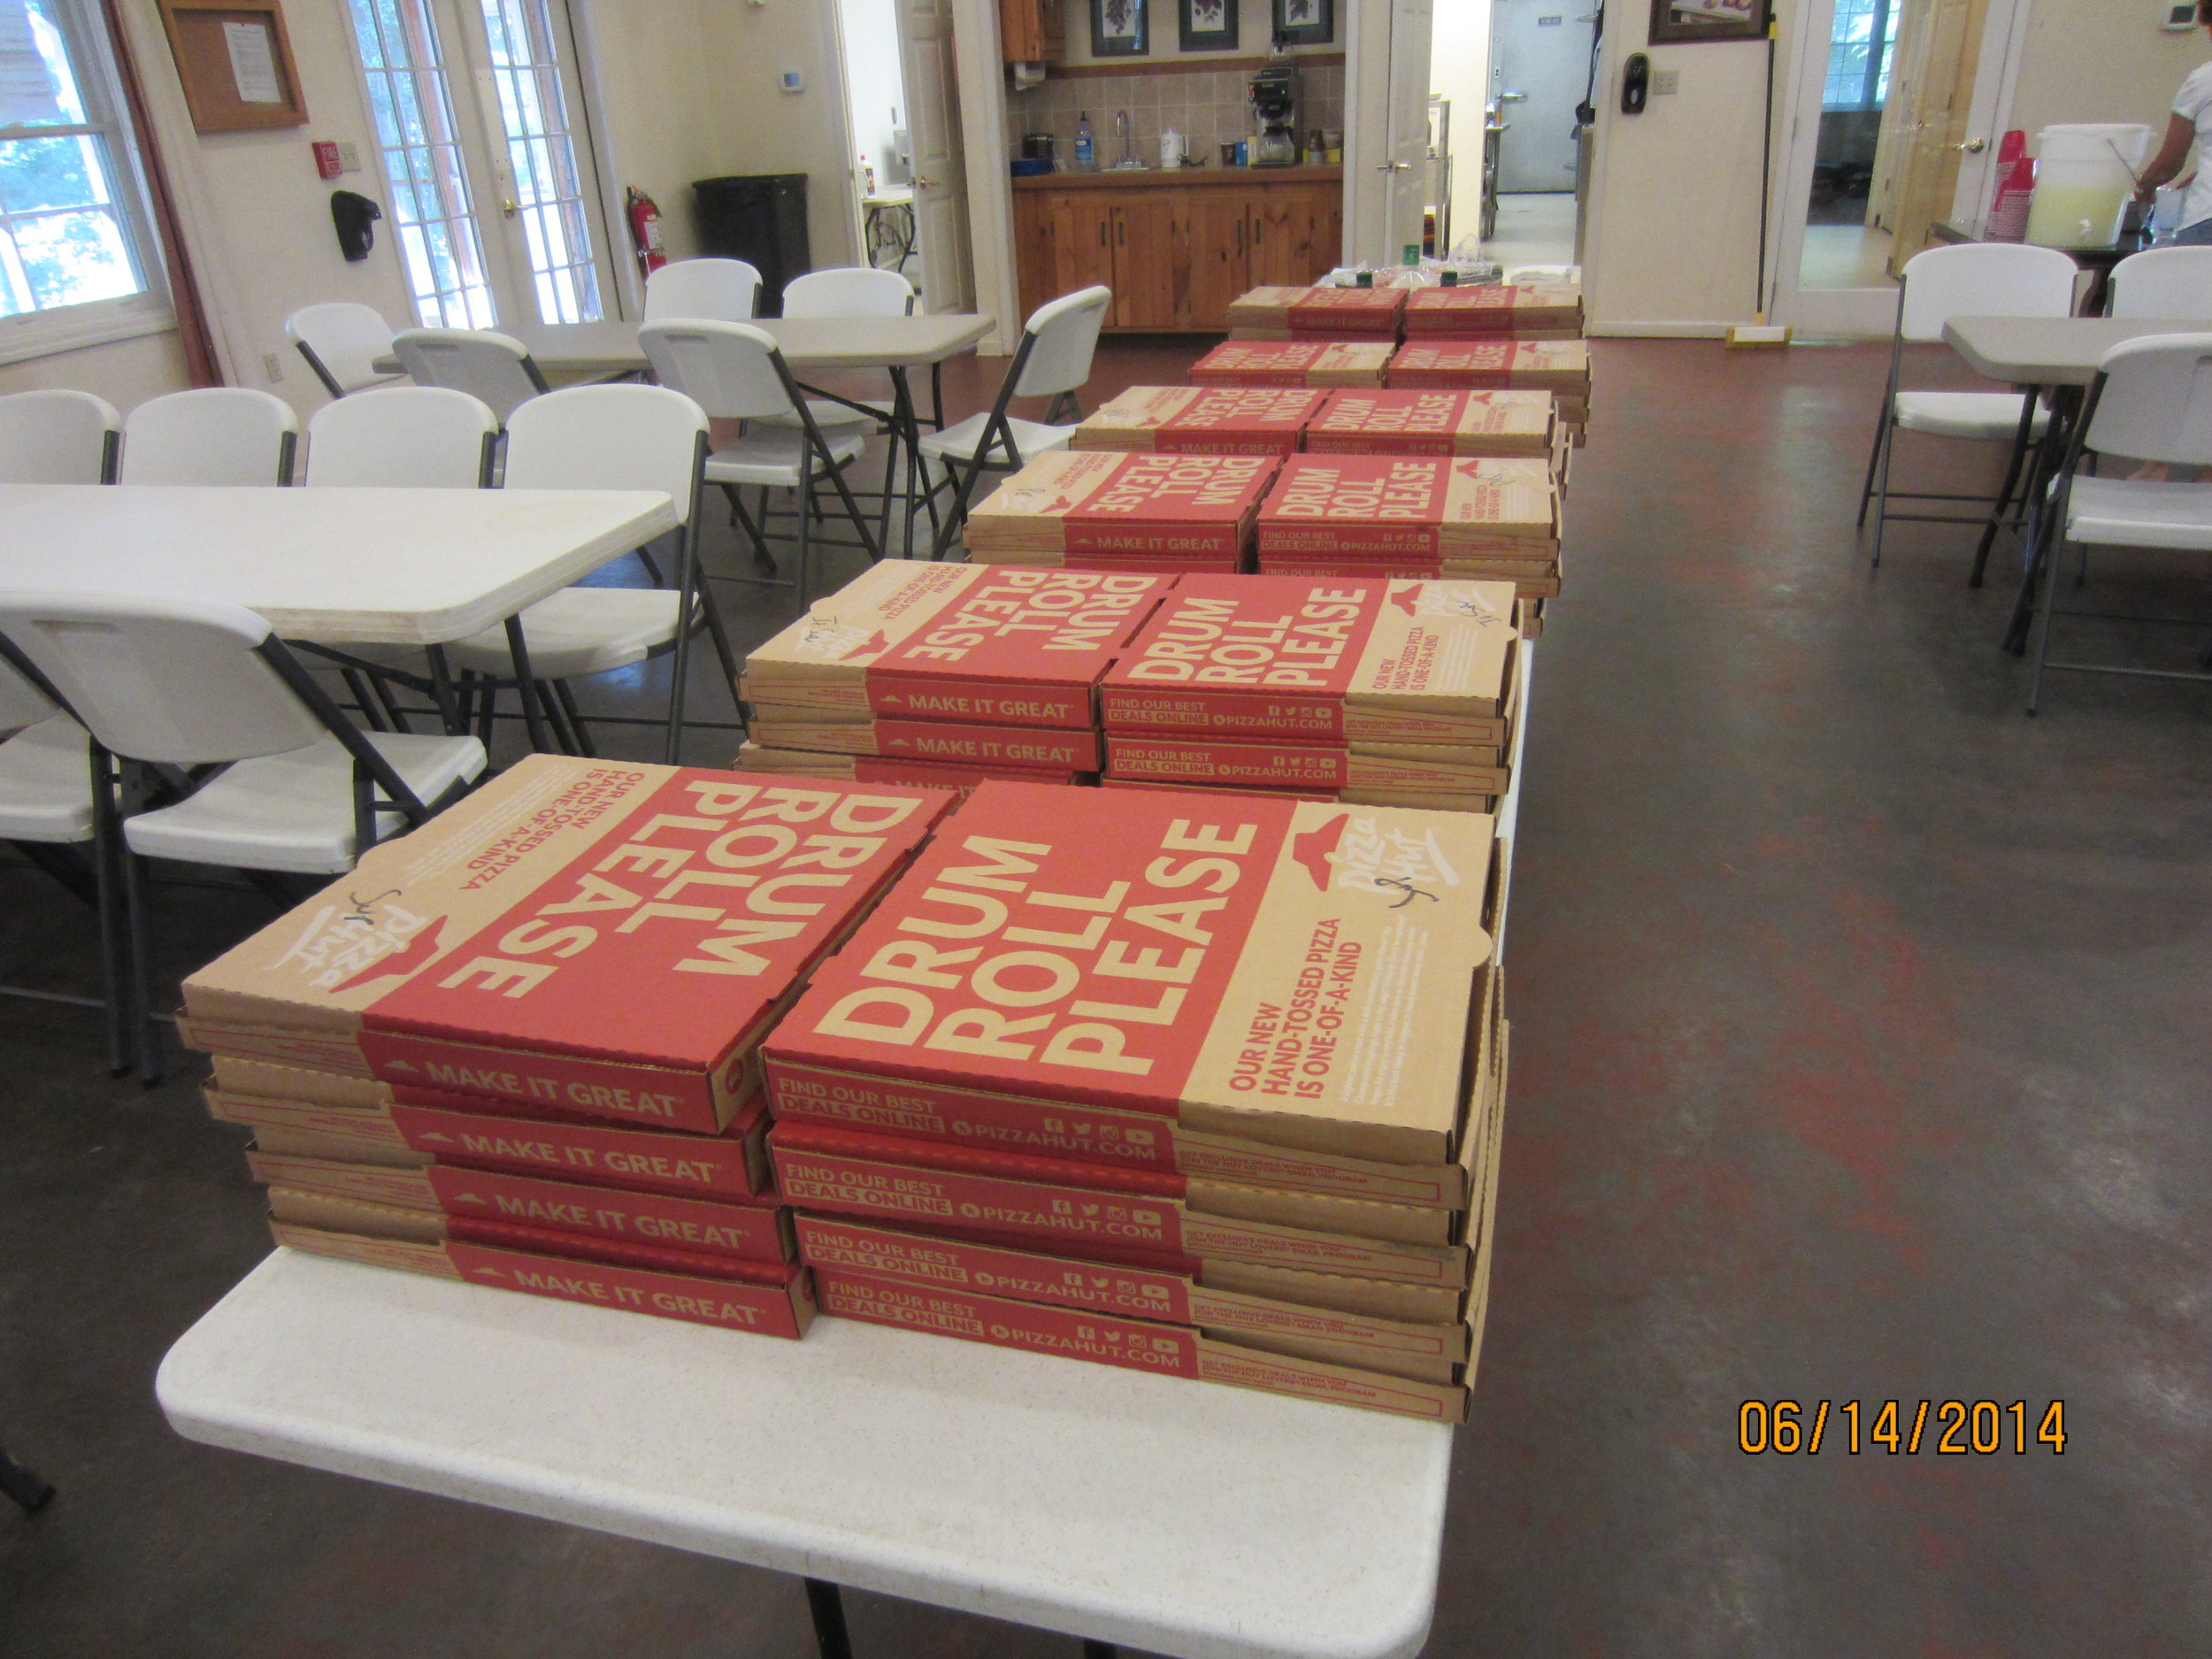 Yes, that is 40 pizzas, the local Pizza Hut was hoppin'.